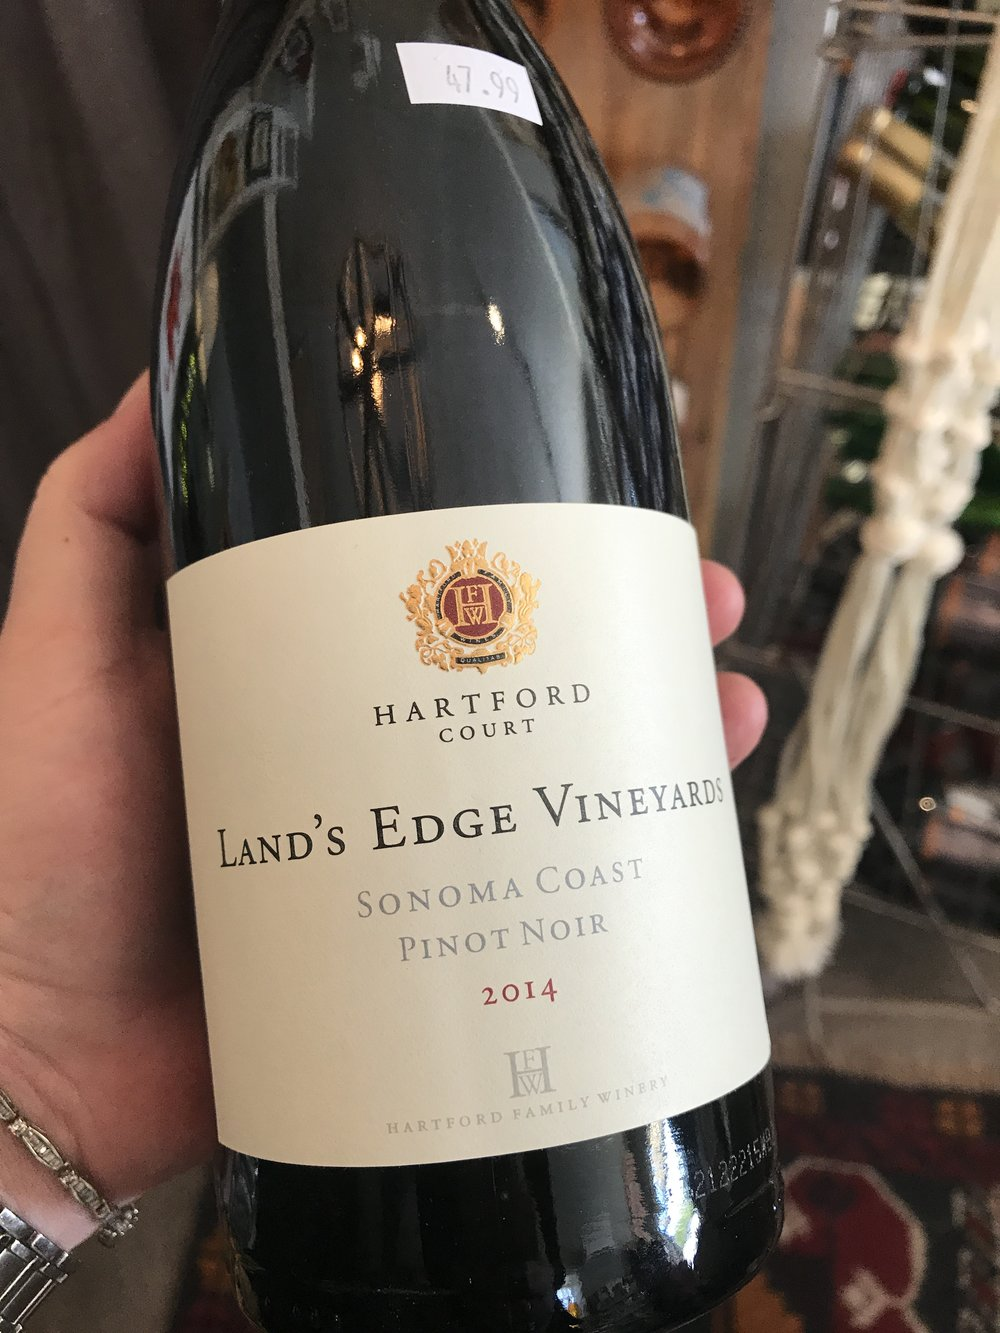 "2014 Hartford Court ""Land's Edge"", Sonoma Coast:   ""The only 2014 tasted was the early-bottled 2014 Pinot Noir Land's Edge Vineyards, which comes from a vineyard four miles from the Pacific Ocean. Aged in 32% new French oak, the wine displays raspberry and blueberry fruit, damp earth, fresh porcini mushrooms and plenty of minerality. This is a juicy, tightly knit, but concentrated and promising Pinot Noir that has that forward fruit of this vintage well displayed."" - 92 points Robert Parker, The Wine Advocate, October 2015. 47.99"